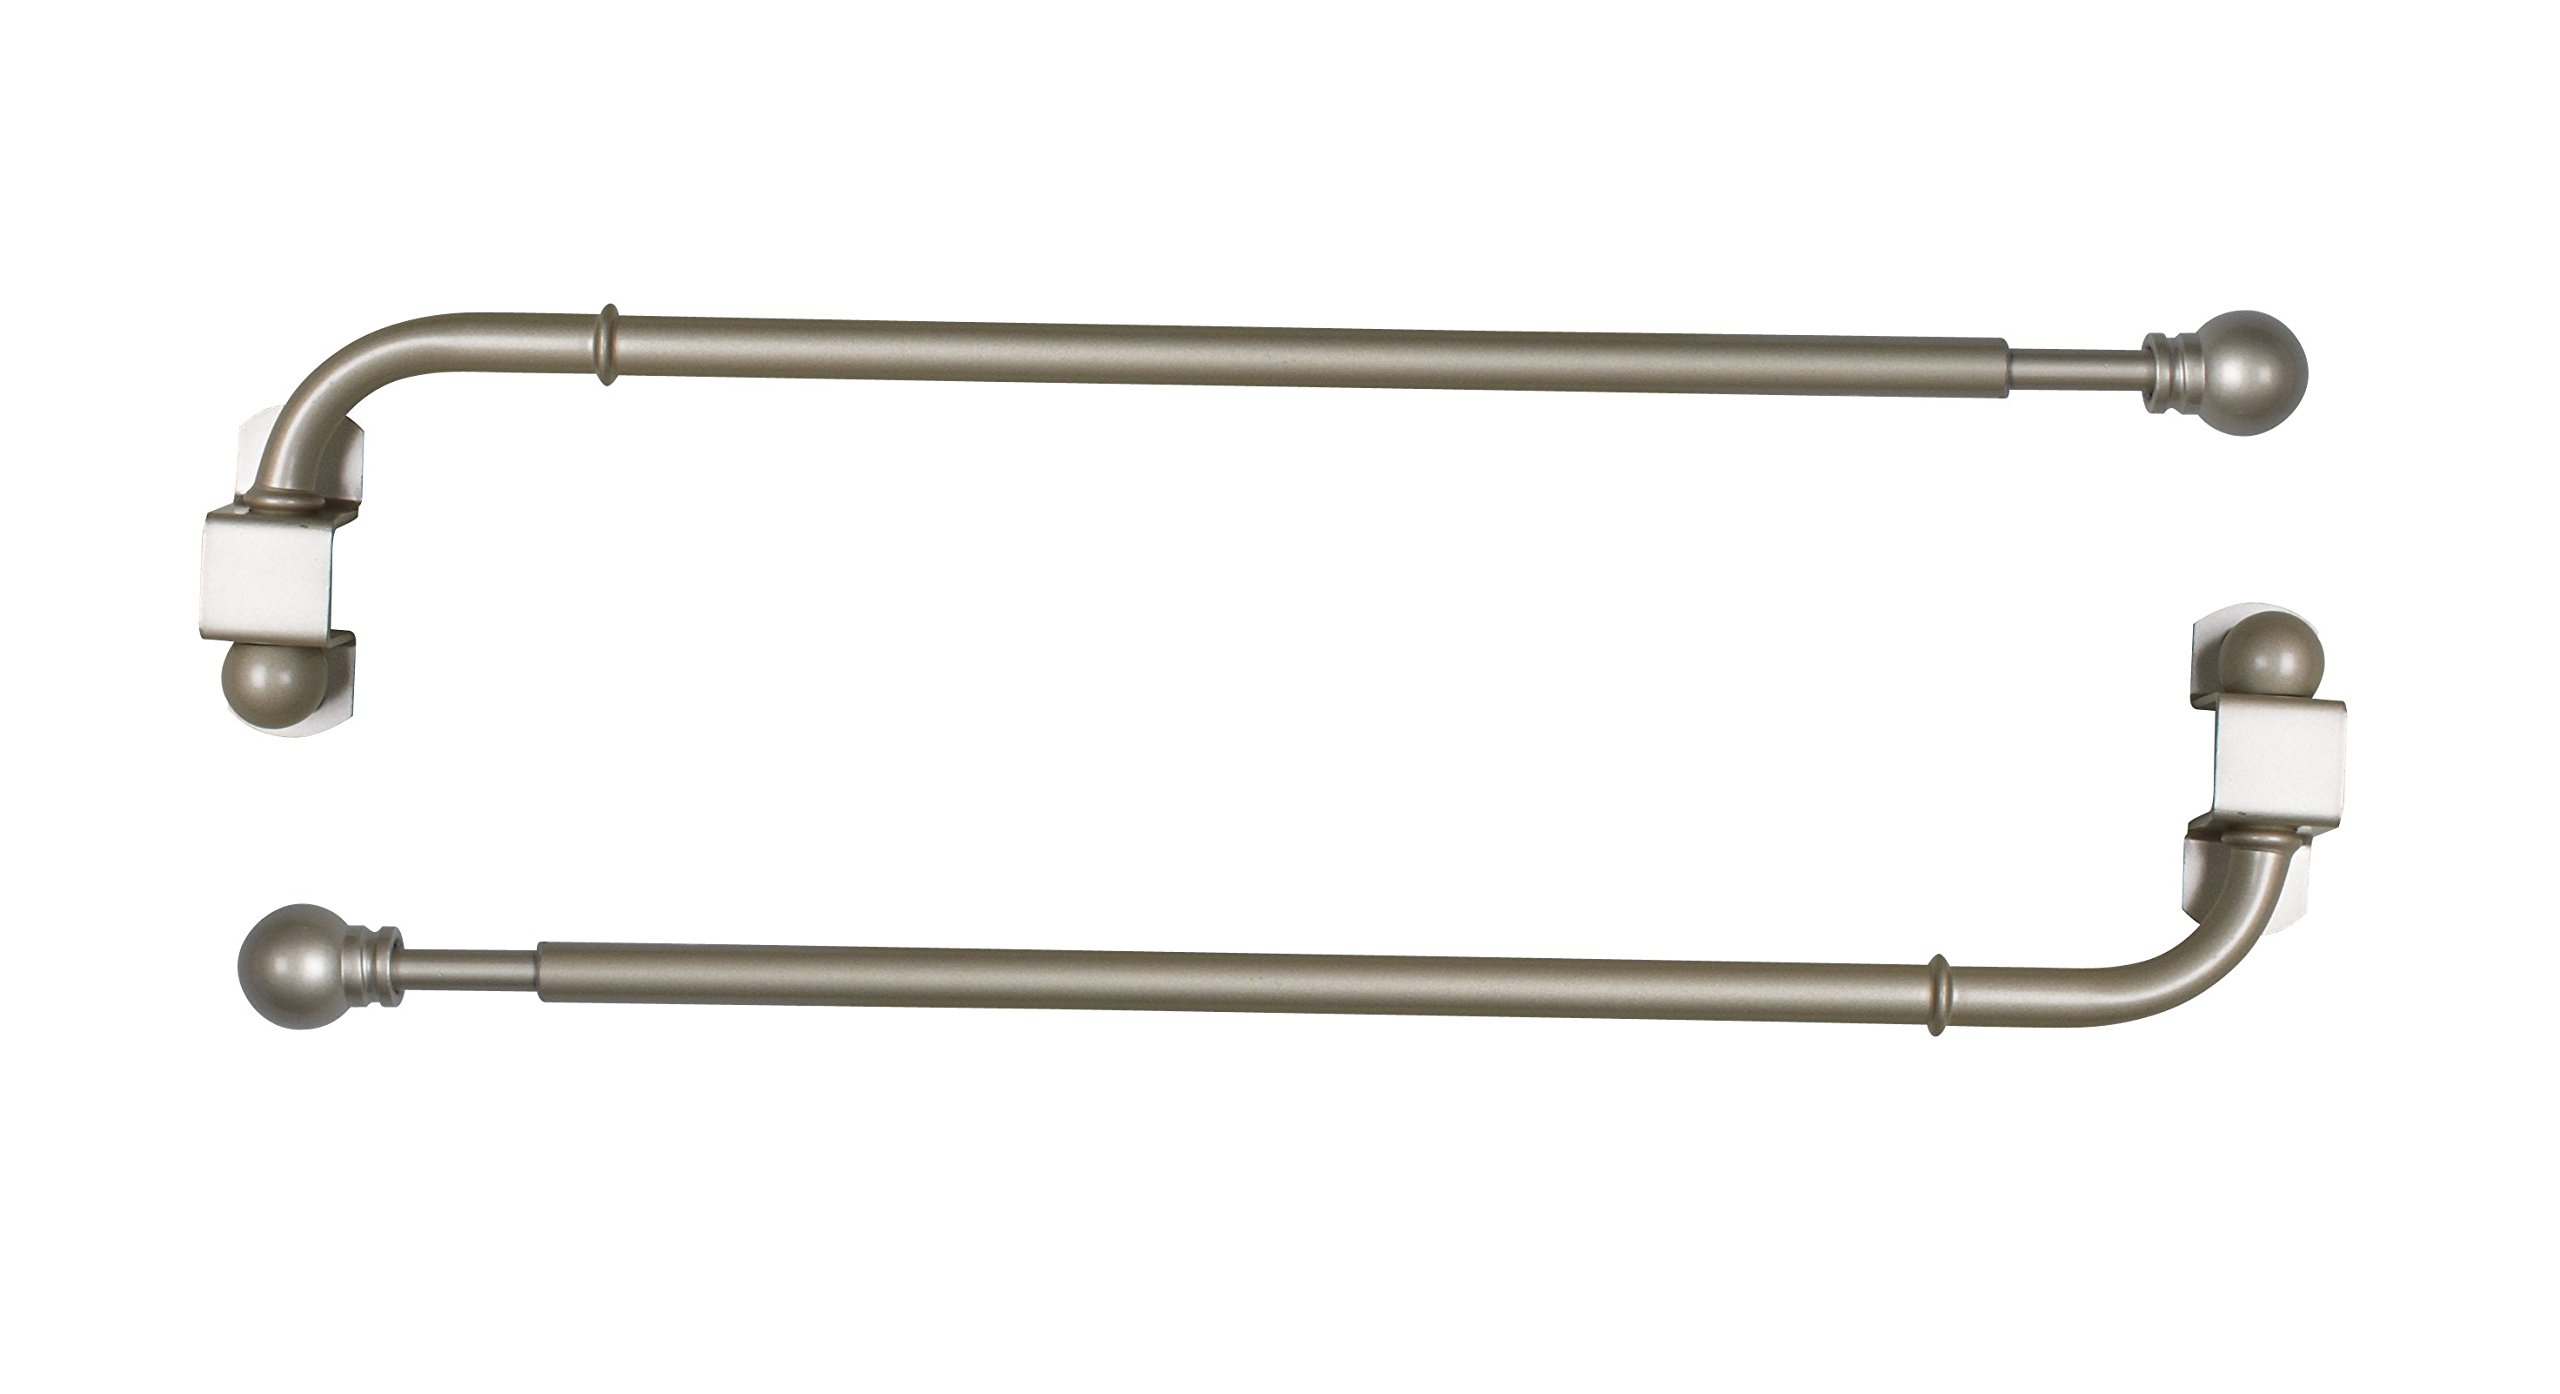 Versailles Home Fashions Pair of Swing Arm with Ball Finial, Pewter, 24 by 38-Inch by Versailles Home Fashions